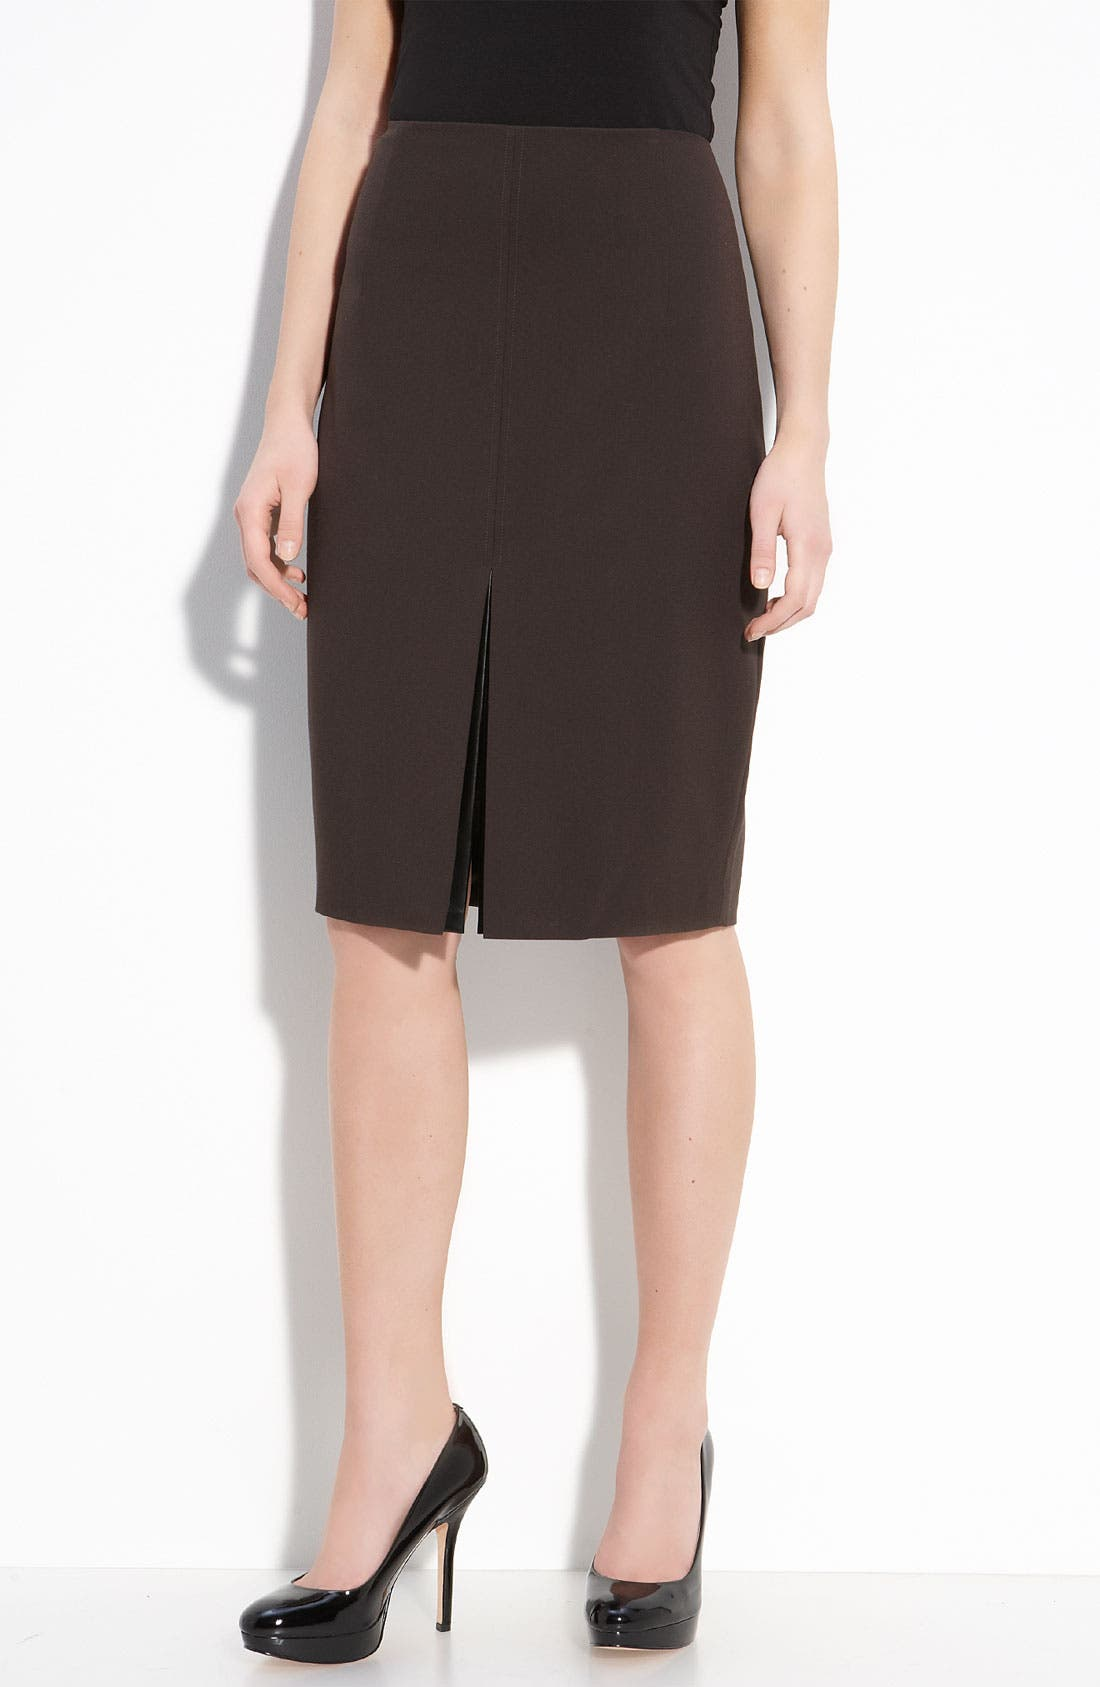 Alternate Image 1 Selected - Elie Tahari Exclusive for Nordstrom 'Julie' Knit Skirt